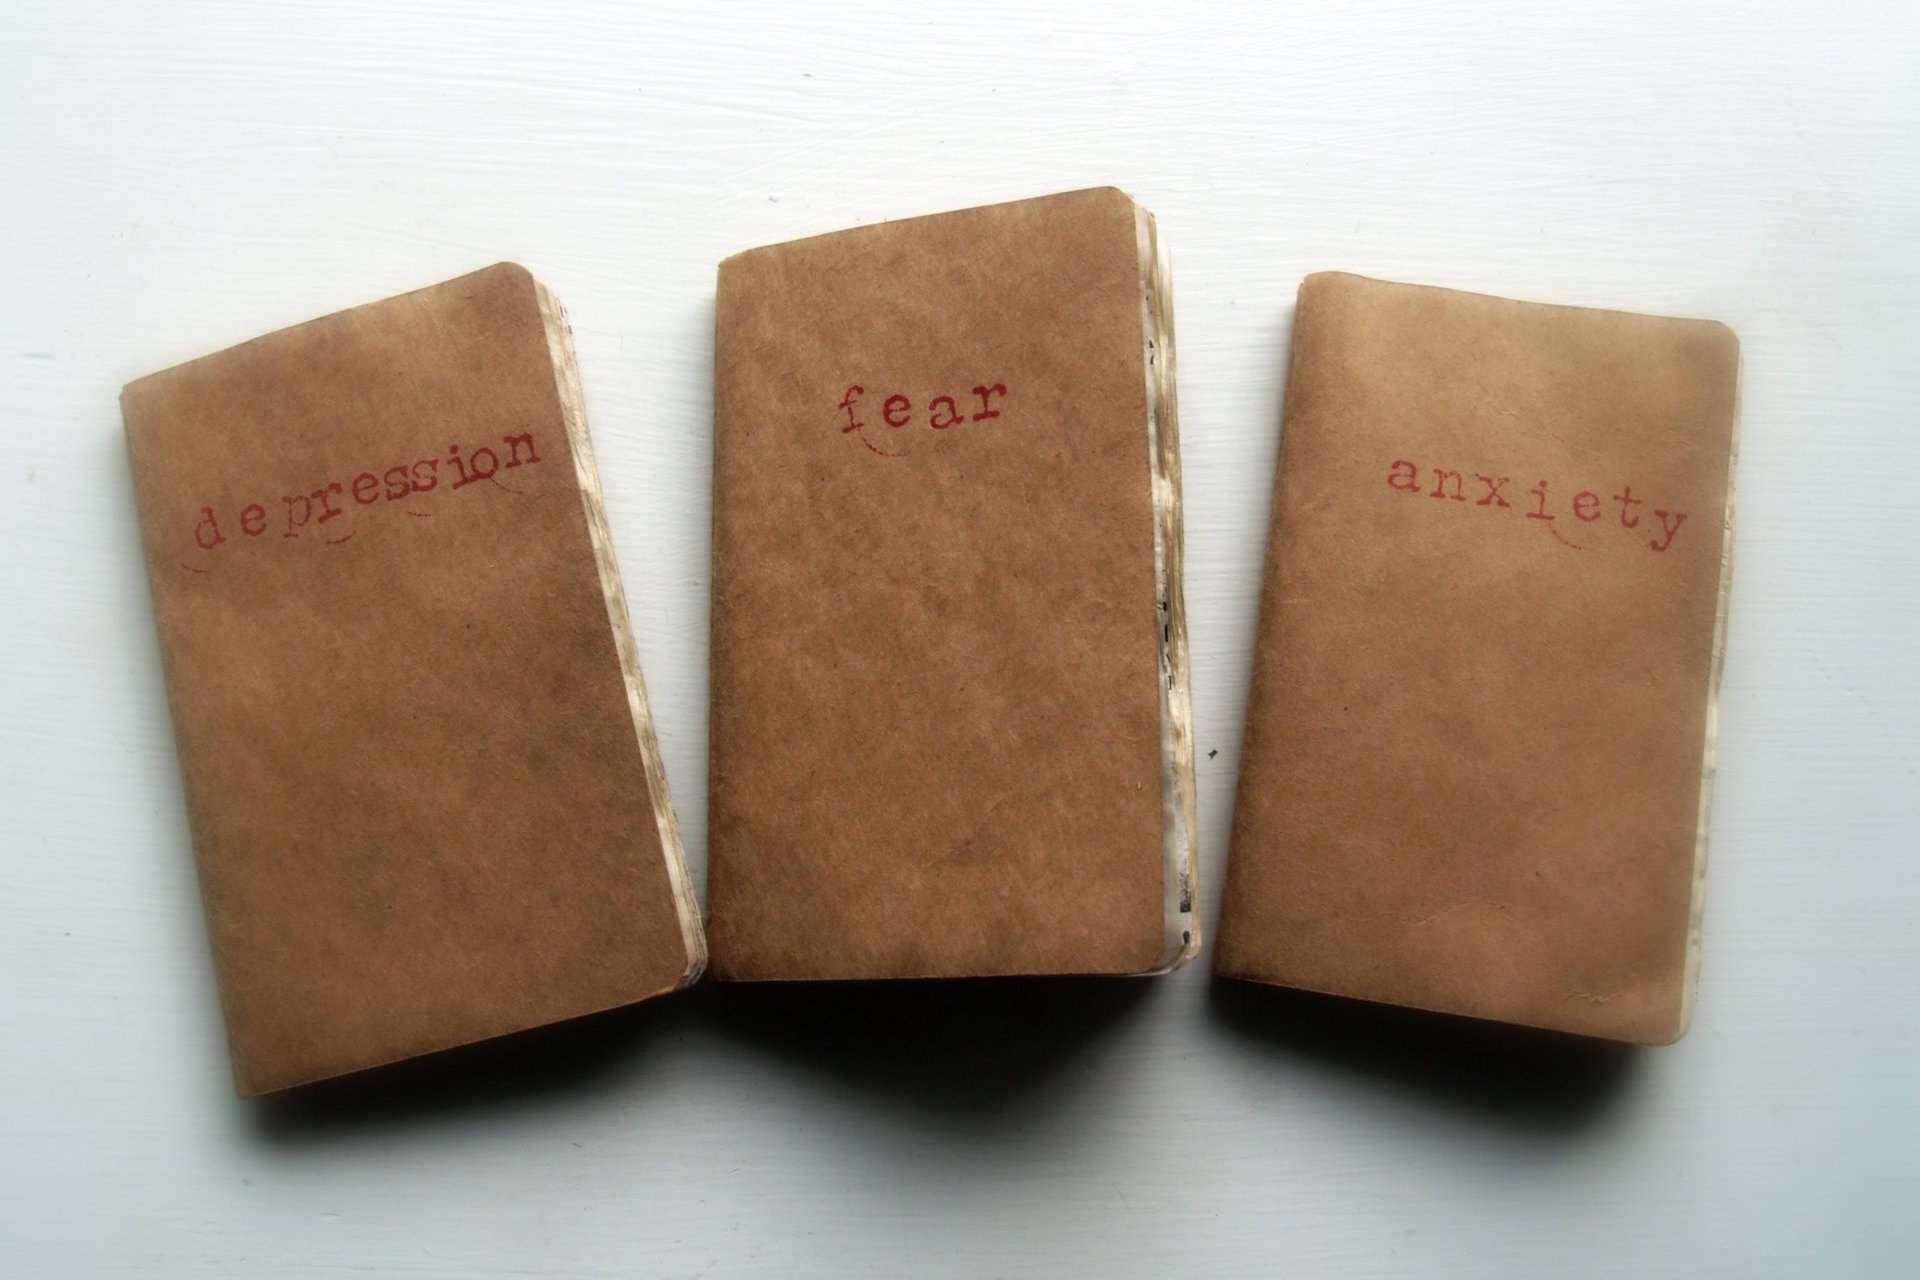 7 Reasons You've Failed as a Writer